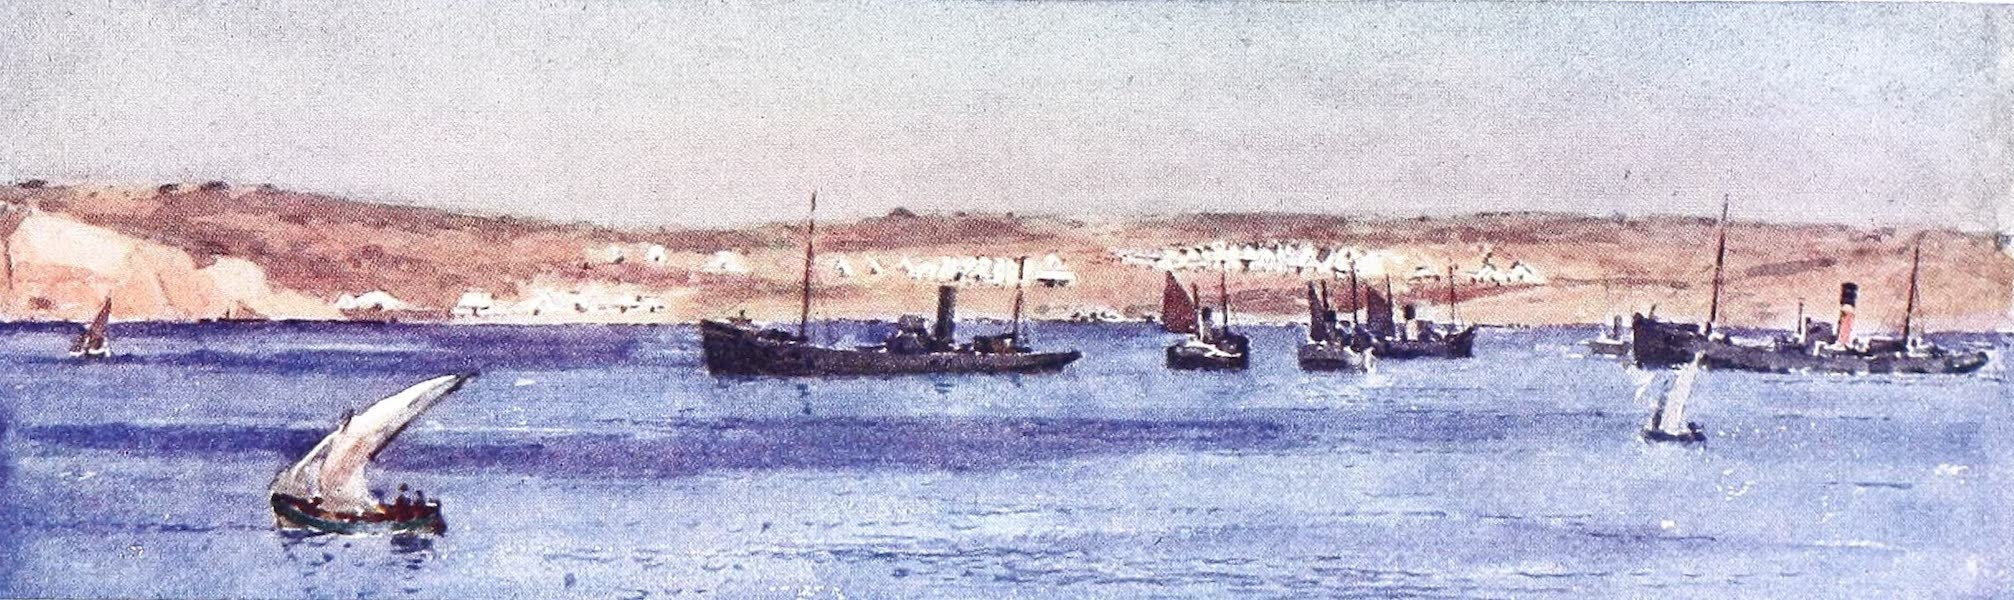 The Dardanelles : Colour Sketches from Gallipoli - General Sir Ian Hamilton's Headquarters (1915)